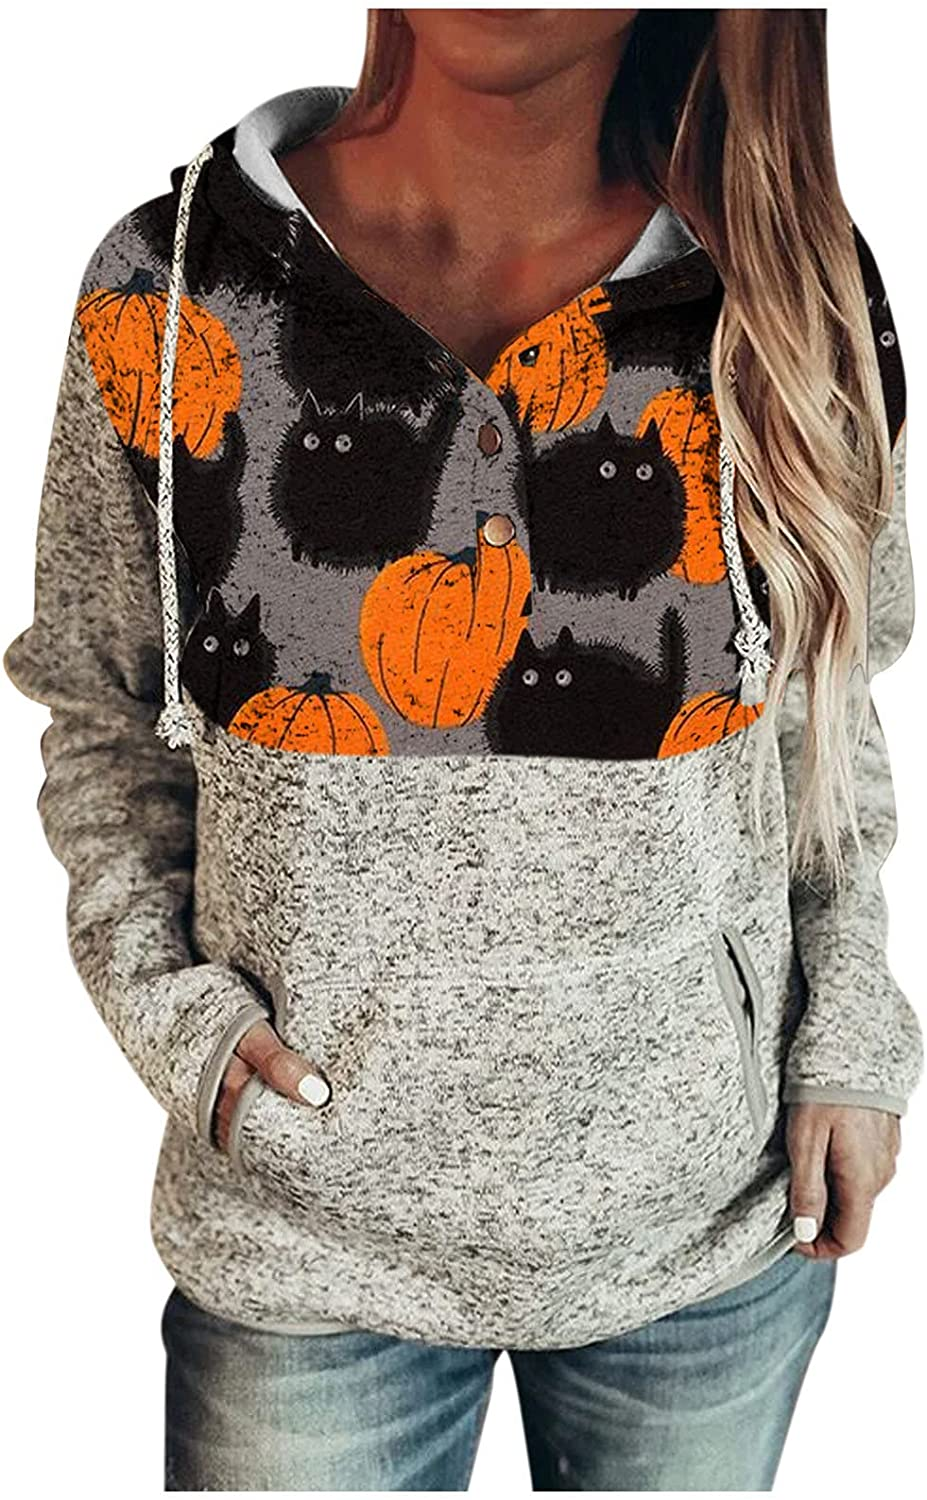 GKASA Womens Button Down Hoodies S 70% Max 82% OFF OFF Outlet Long Halloween Pullover Print